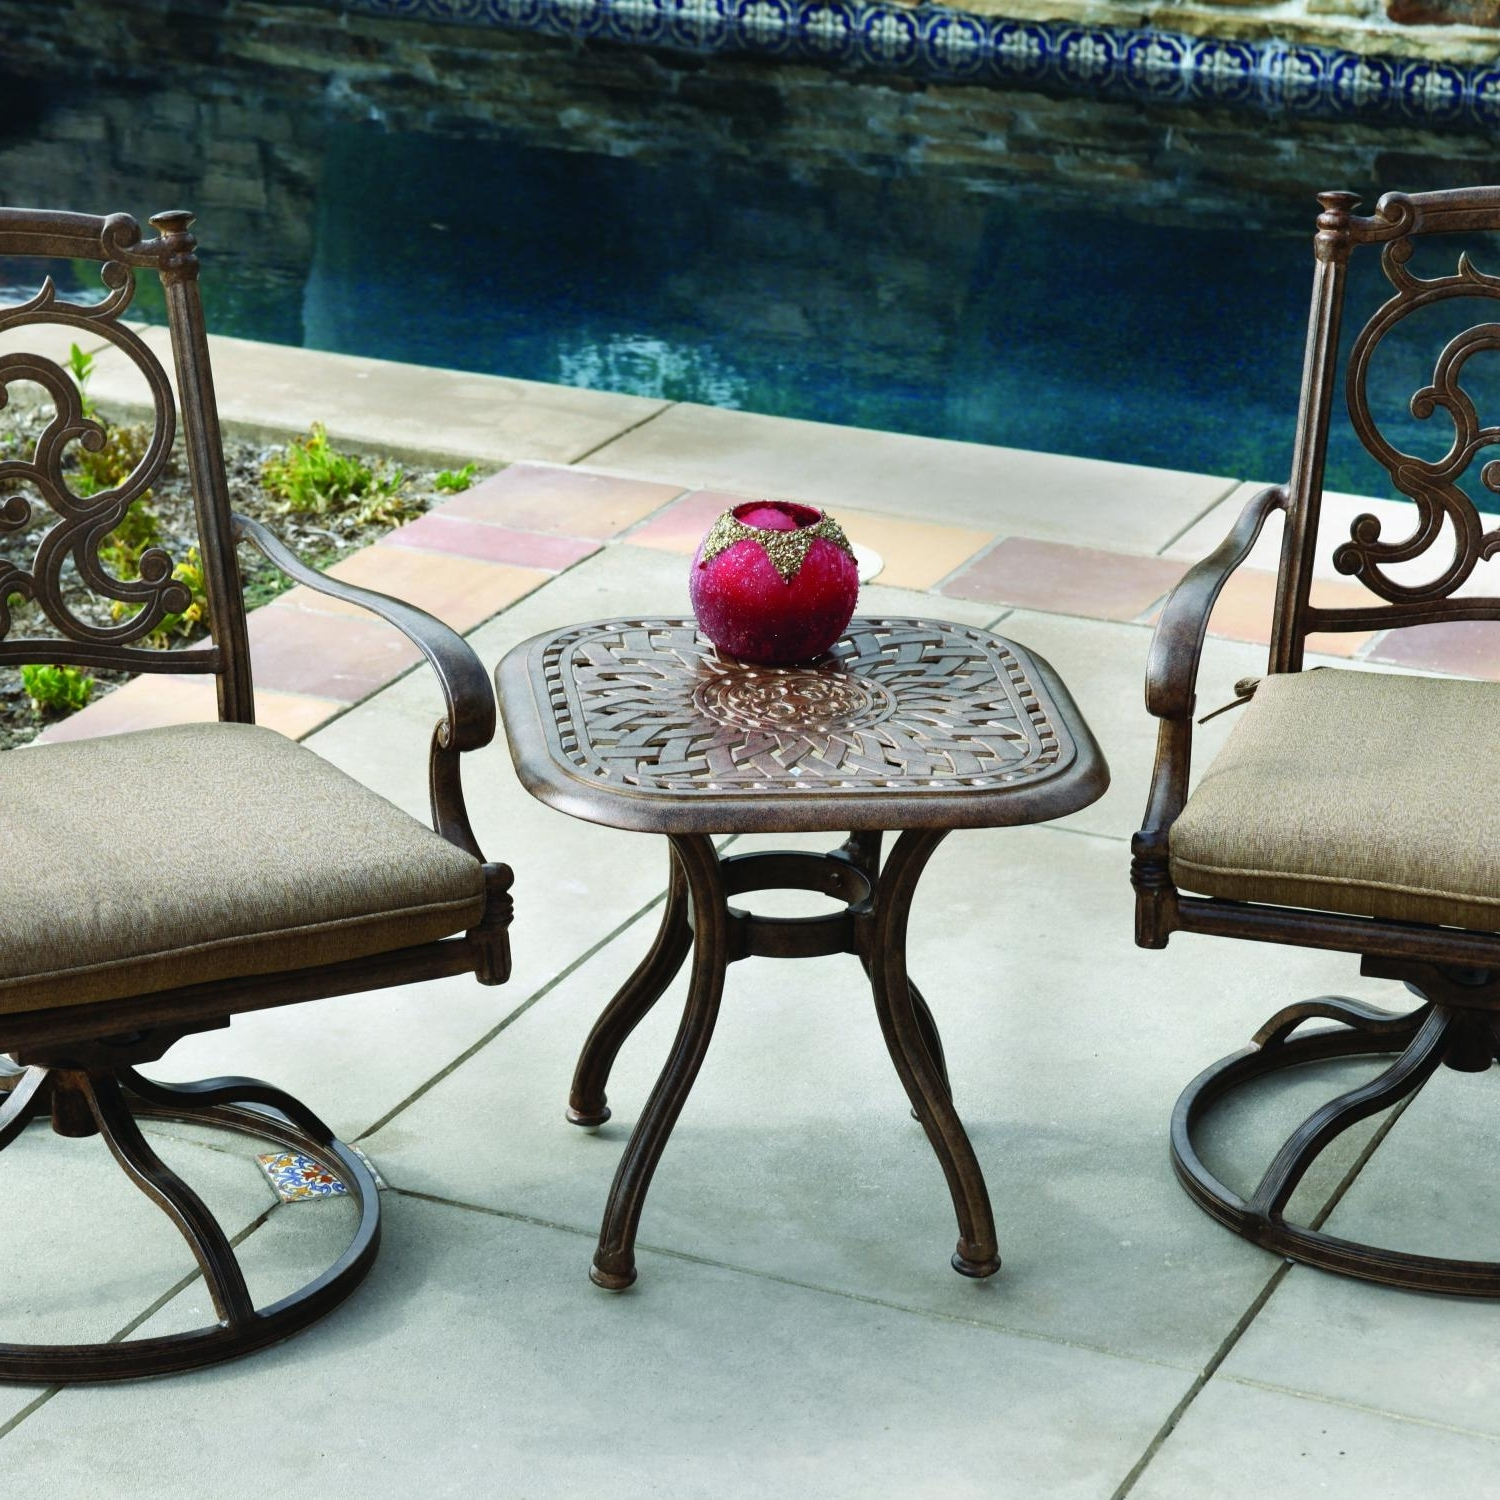 Patio Conversation Sets With Rockers Pertaining To 2018 Darlee Santa Barbara 3 Piece Cast Aluminum Patio Bistro Set With (View 14 of 20)